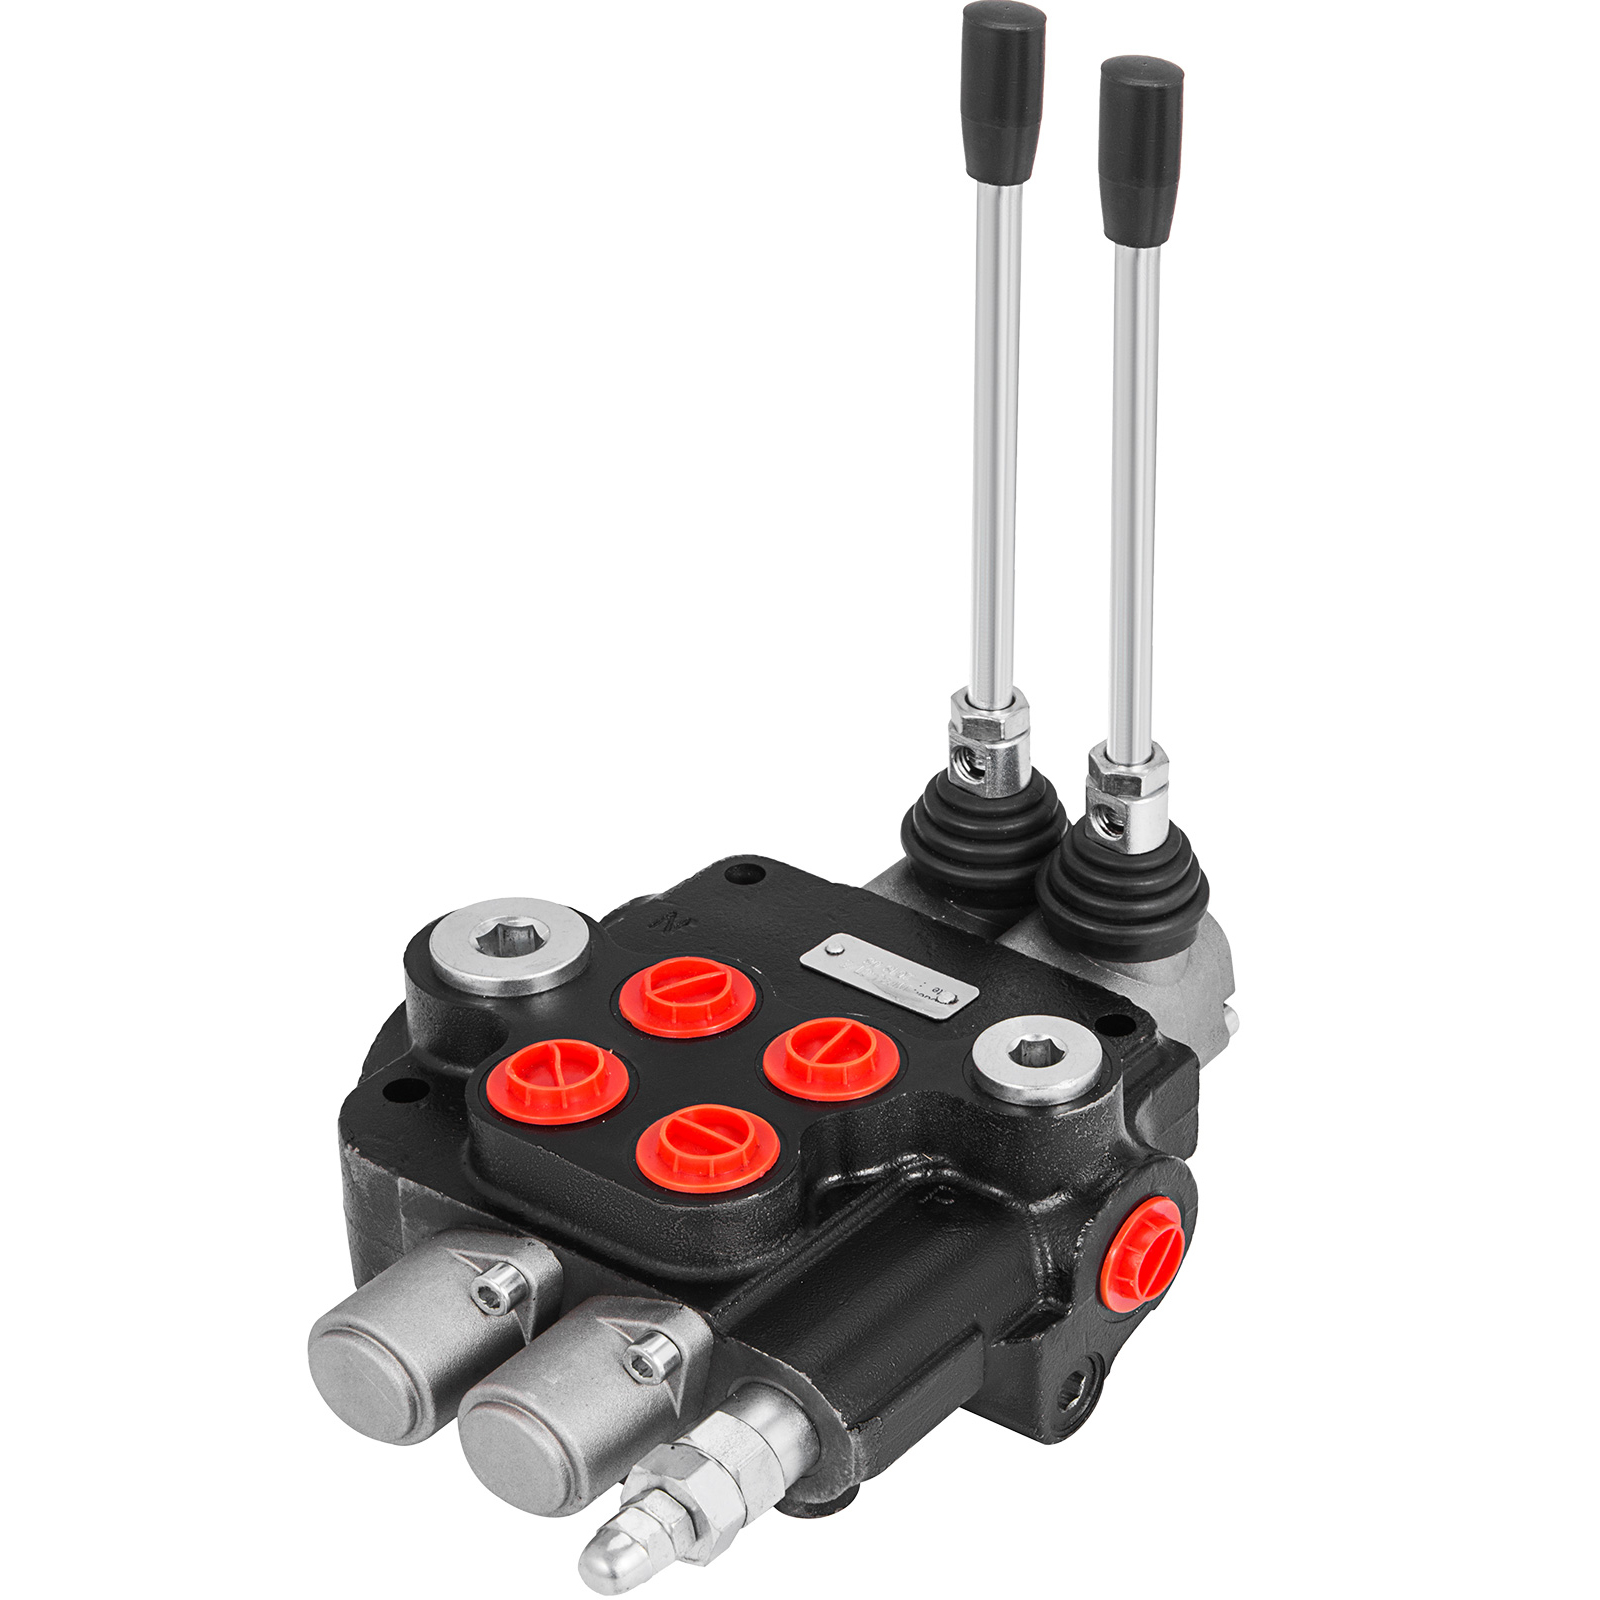 2-Spool-Hydraulic-Control-Valve-21GPM-Double-Acting-Monoblock-Log-Small-Tractors thumbnail 10